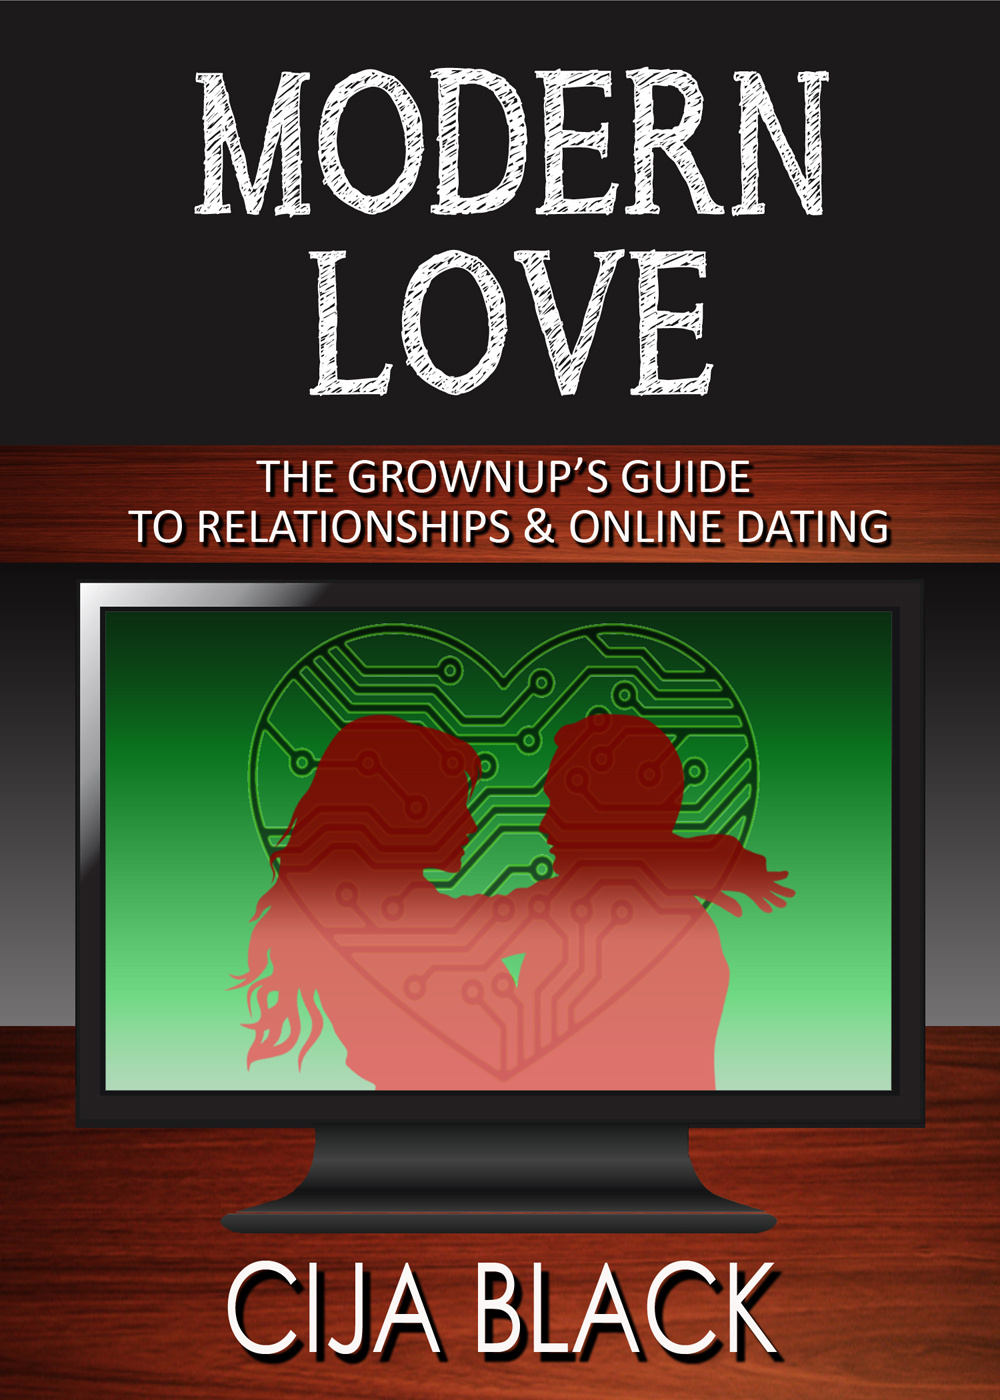 Online love advice